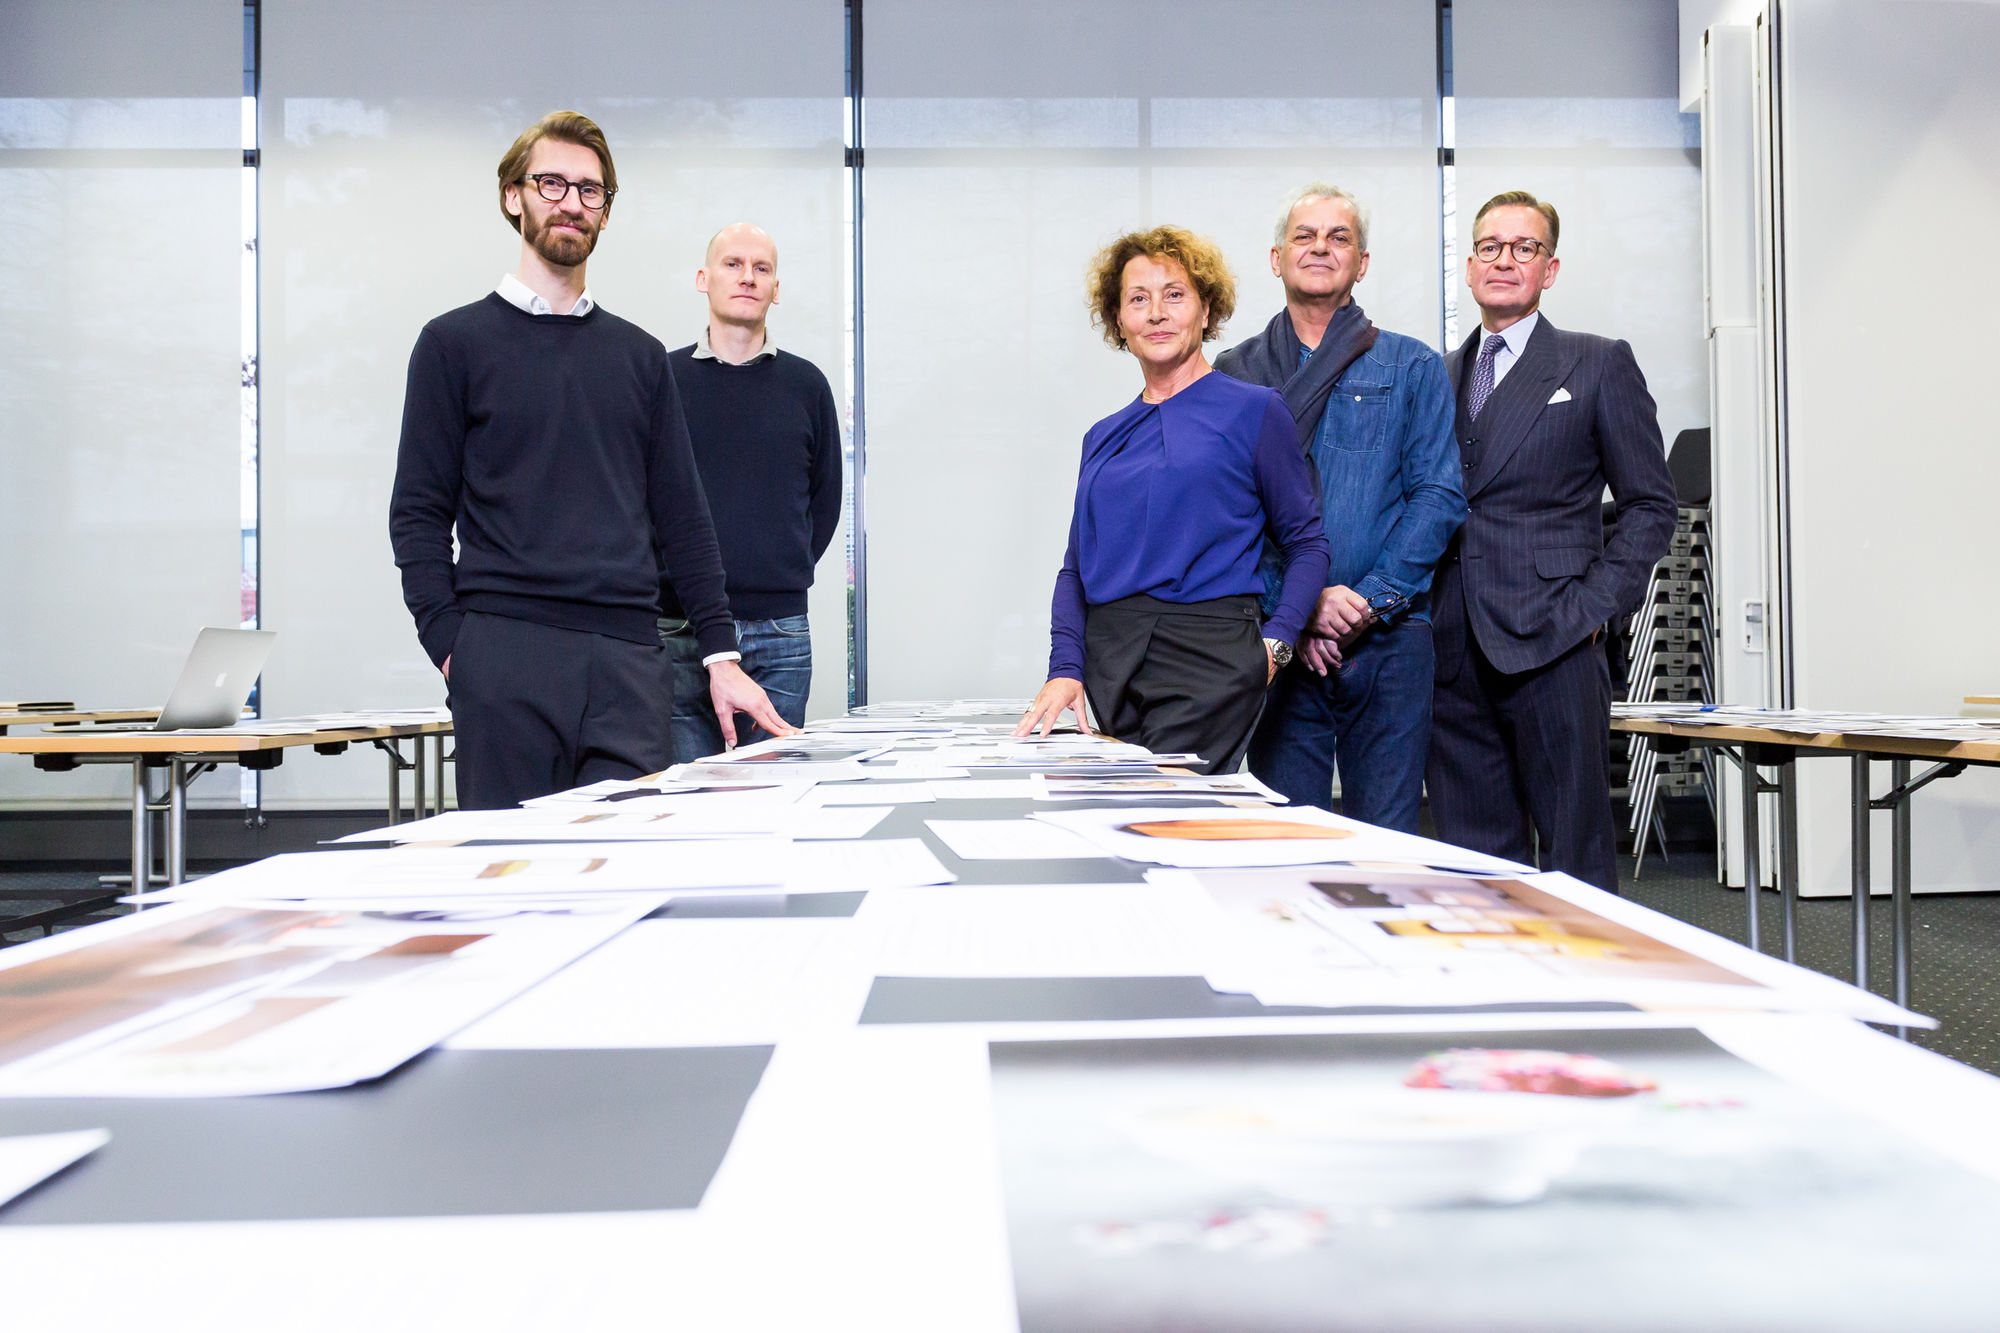 Jury of the ICONIC AWARD 2019: Innovative Interior: Benjamin Wolf, Sebastian Wrong, Barbara Friedrich, Giulio Ridolfo, Andrej Kupetz